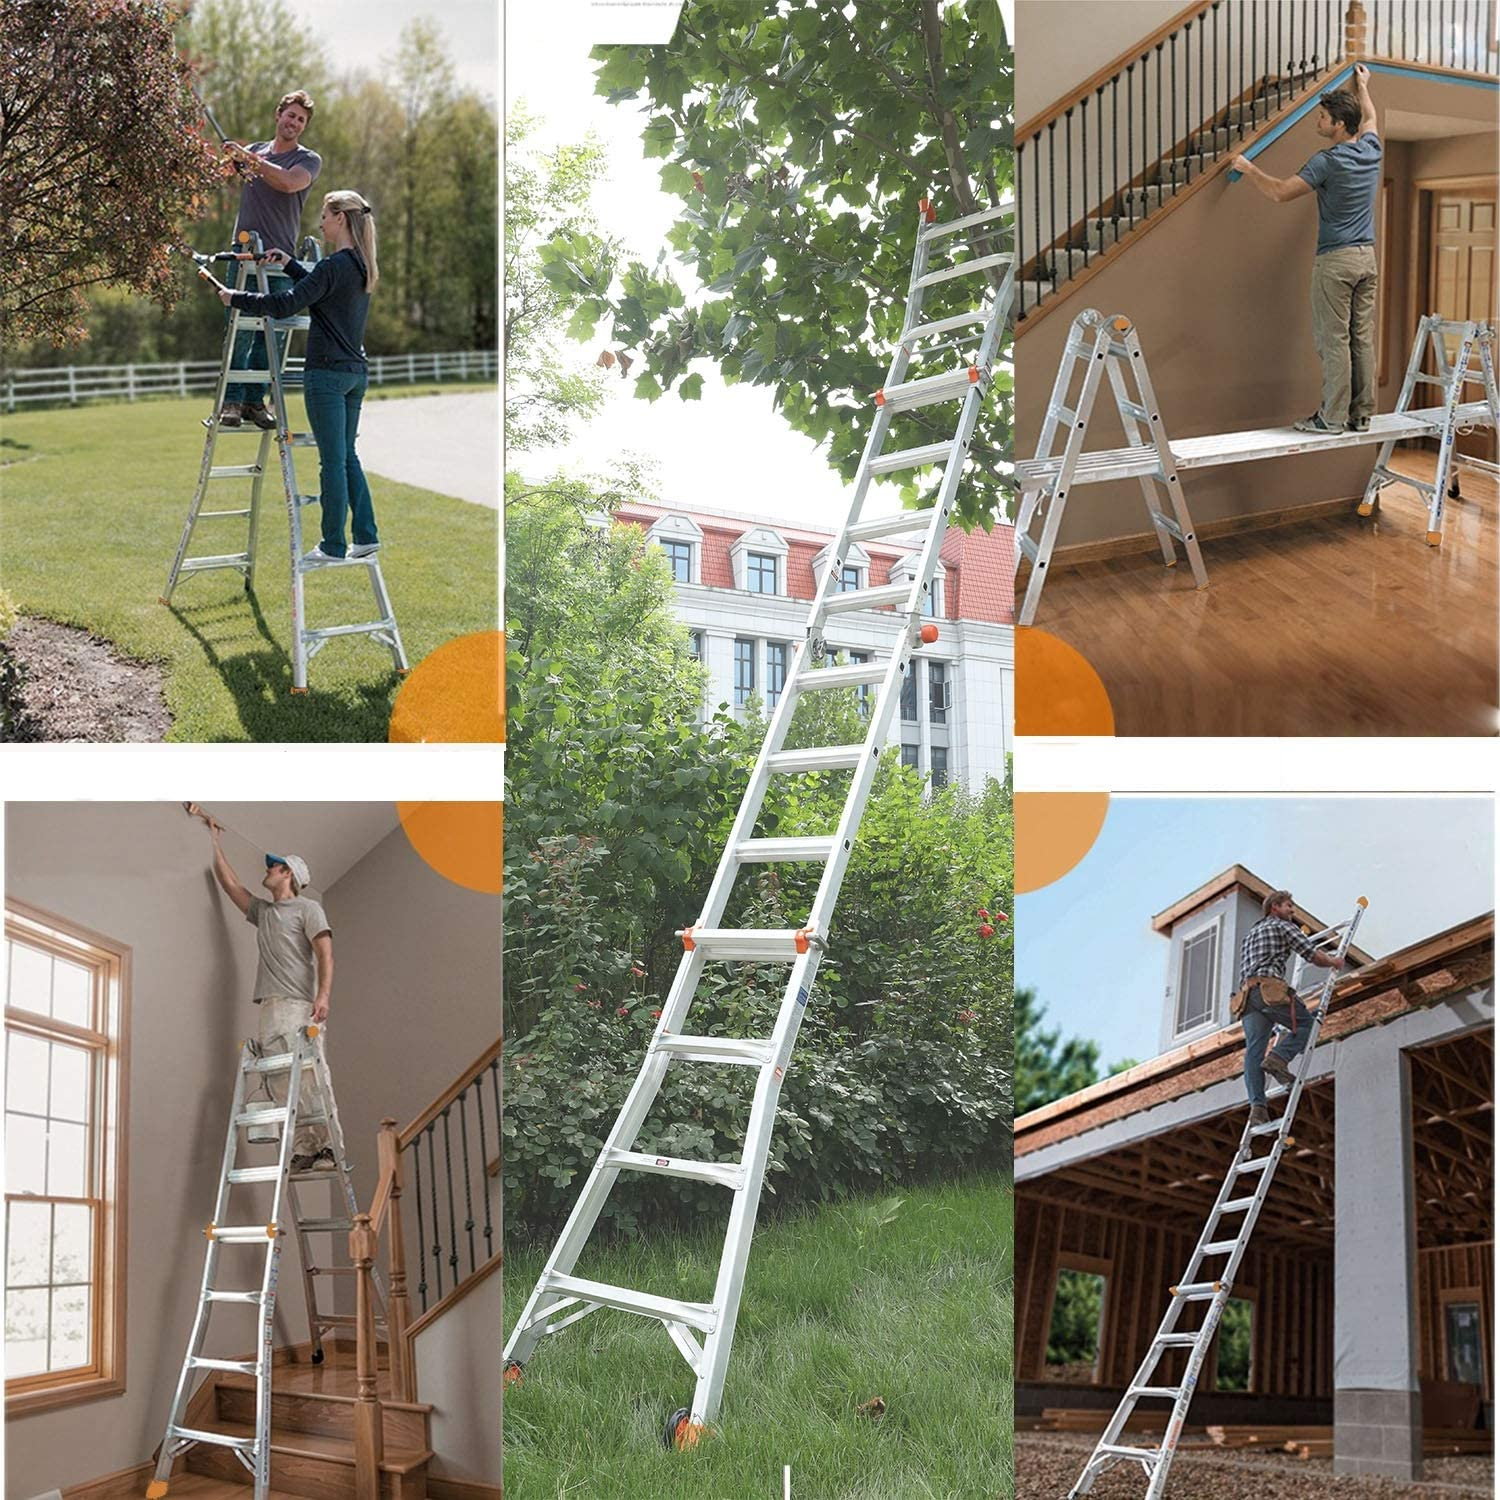 Embedded Buckle Aluminium Alloy Texture QOMOTOP Multi-Use Ladder,14.8-Foot Easy to Operate Two Wheels 300-Pound Duty Rating Non-Slip Design